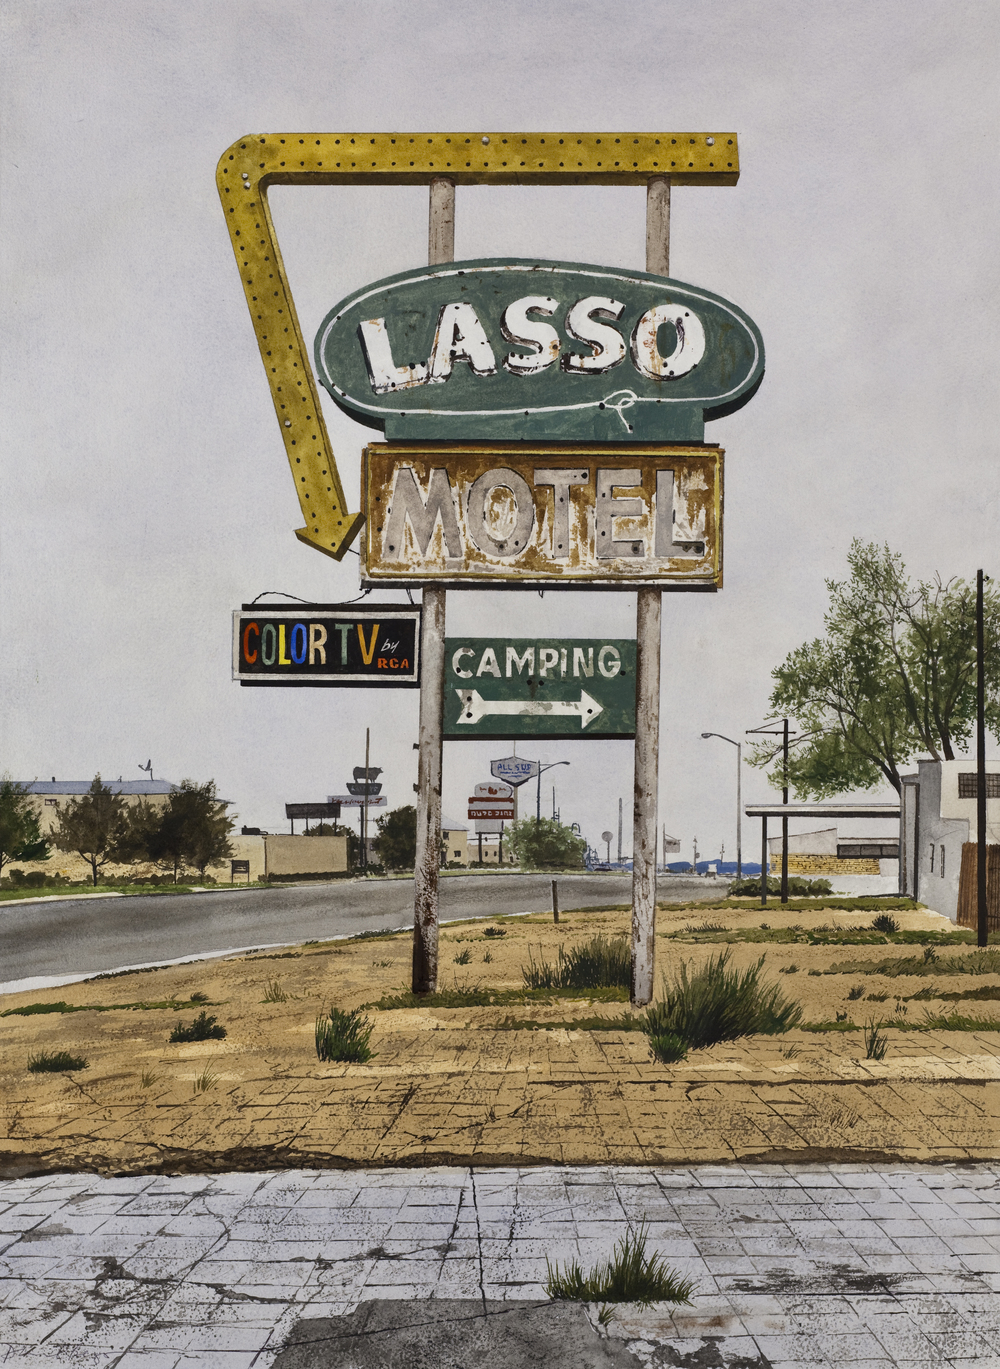 "Daniel Blagg, The Lasso, 2012, watercolor on paper, 35 x 27 1/2"". In the collection of Commerce Capital, Dallas, TX."